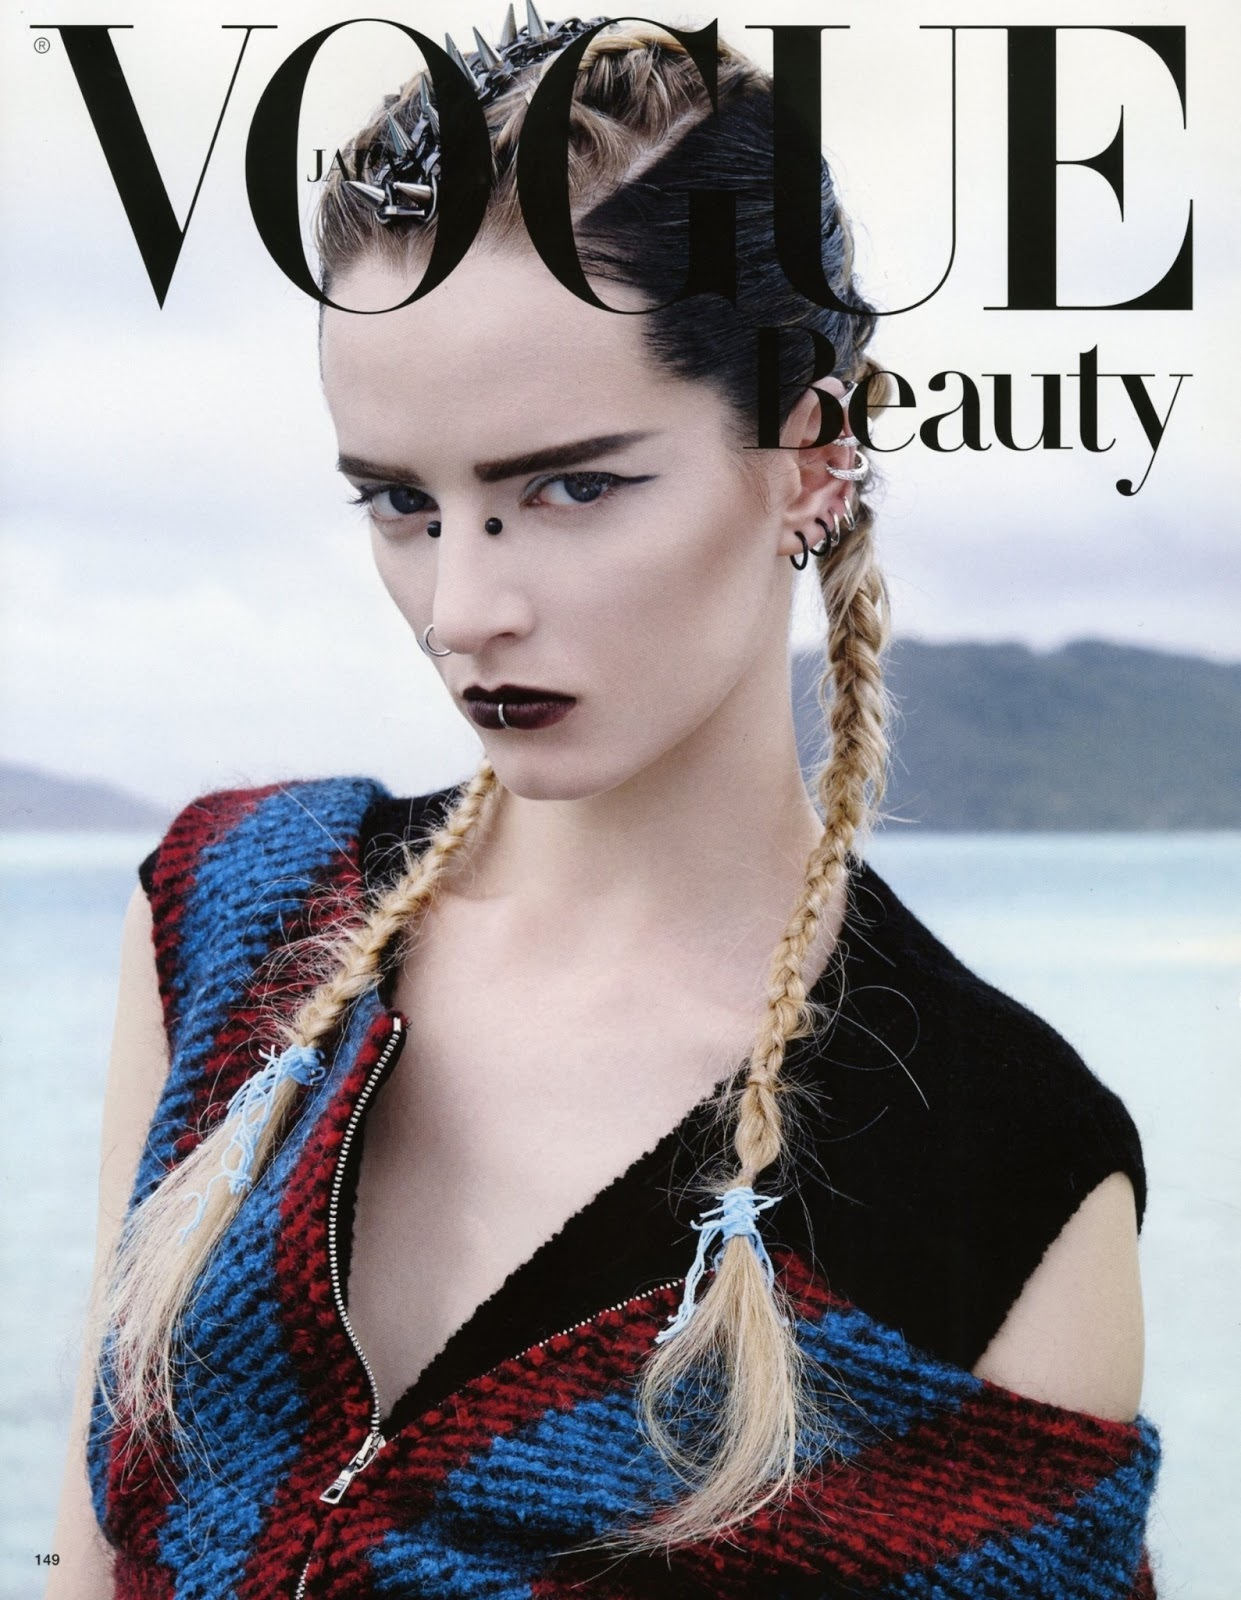 Daria Strokous Covers the Latest Issue of Vogue Japan Beauty